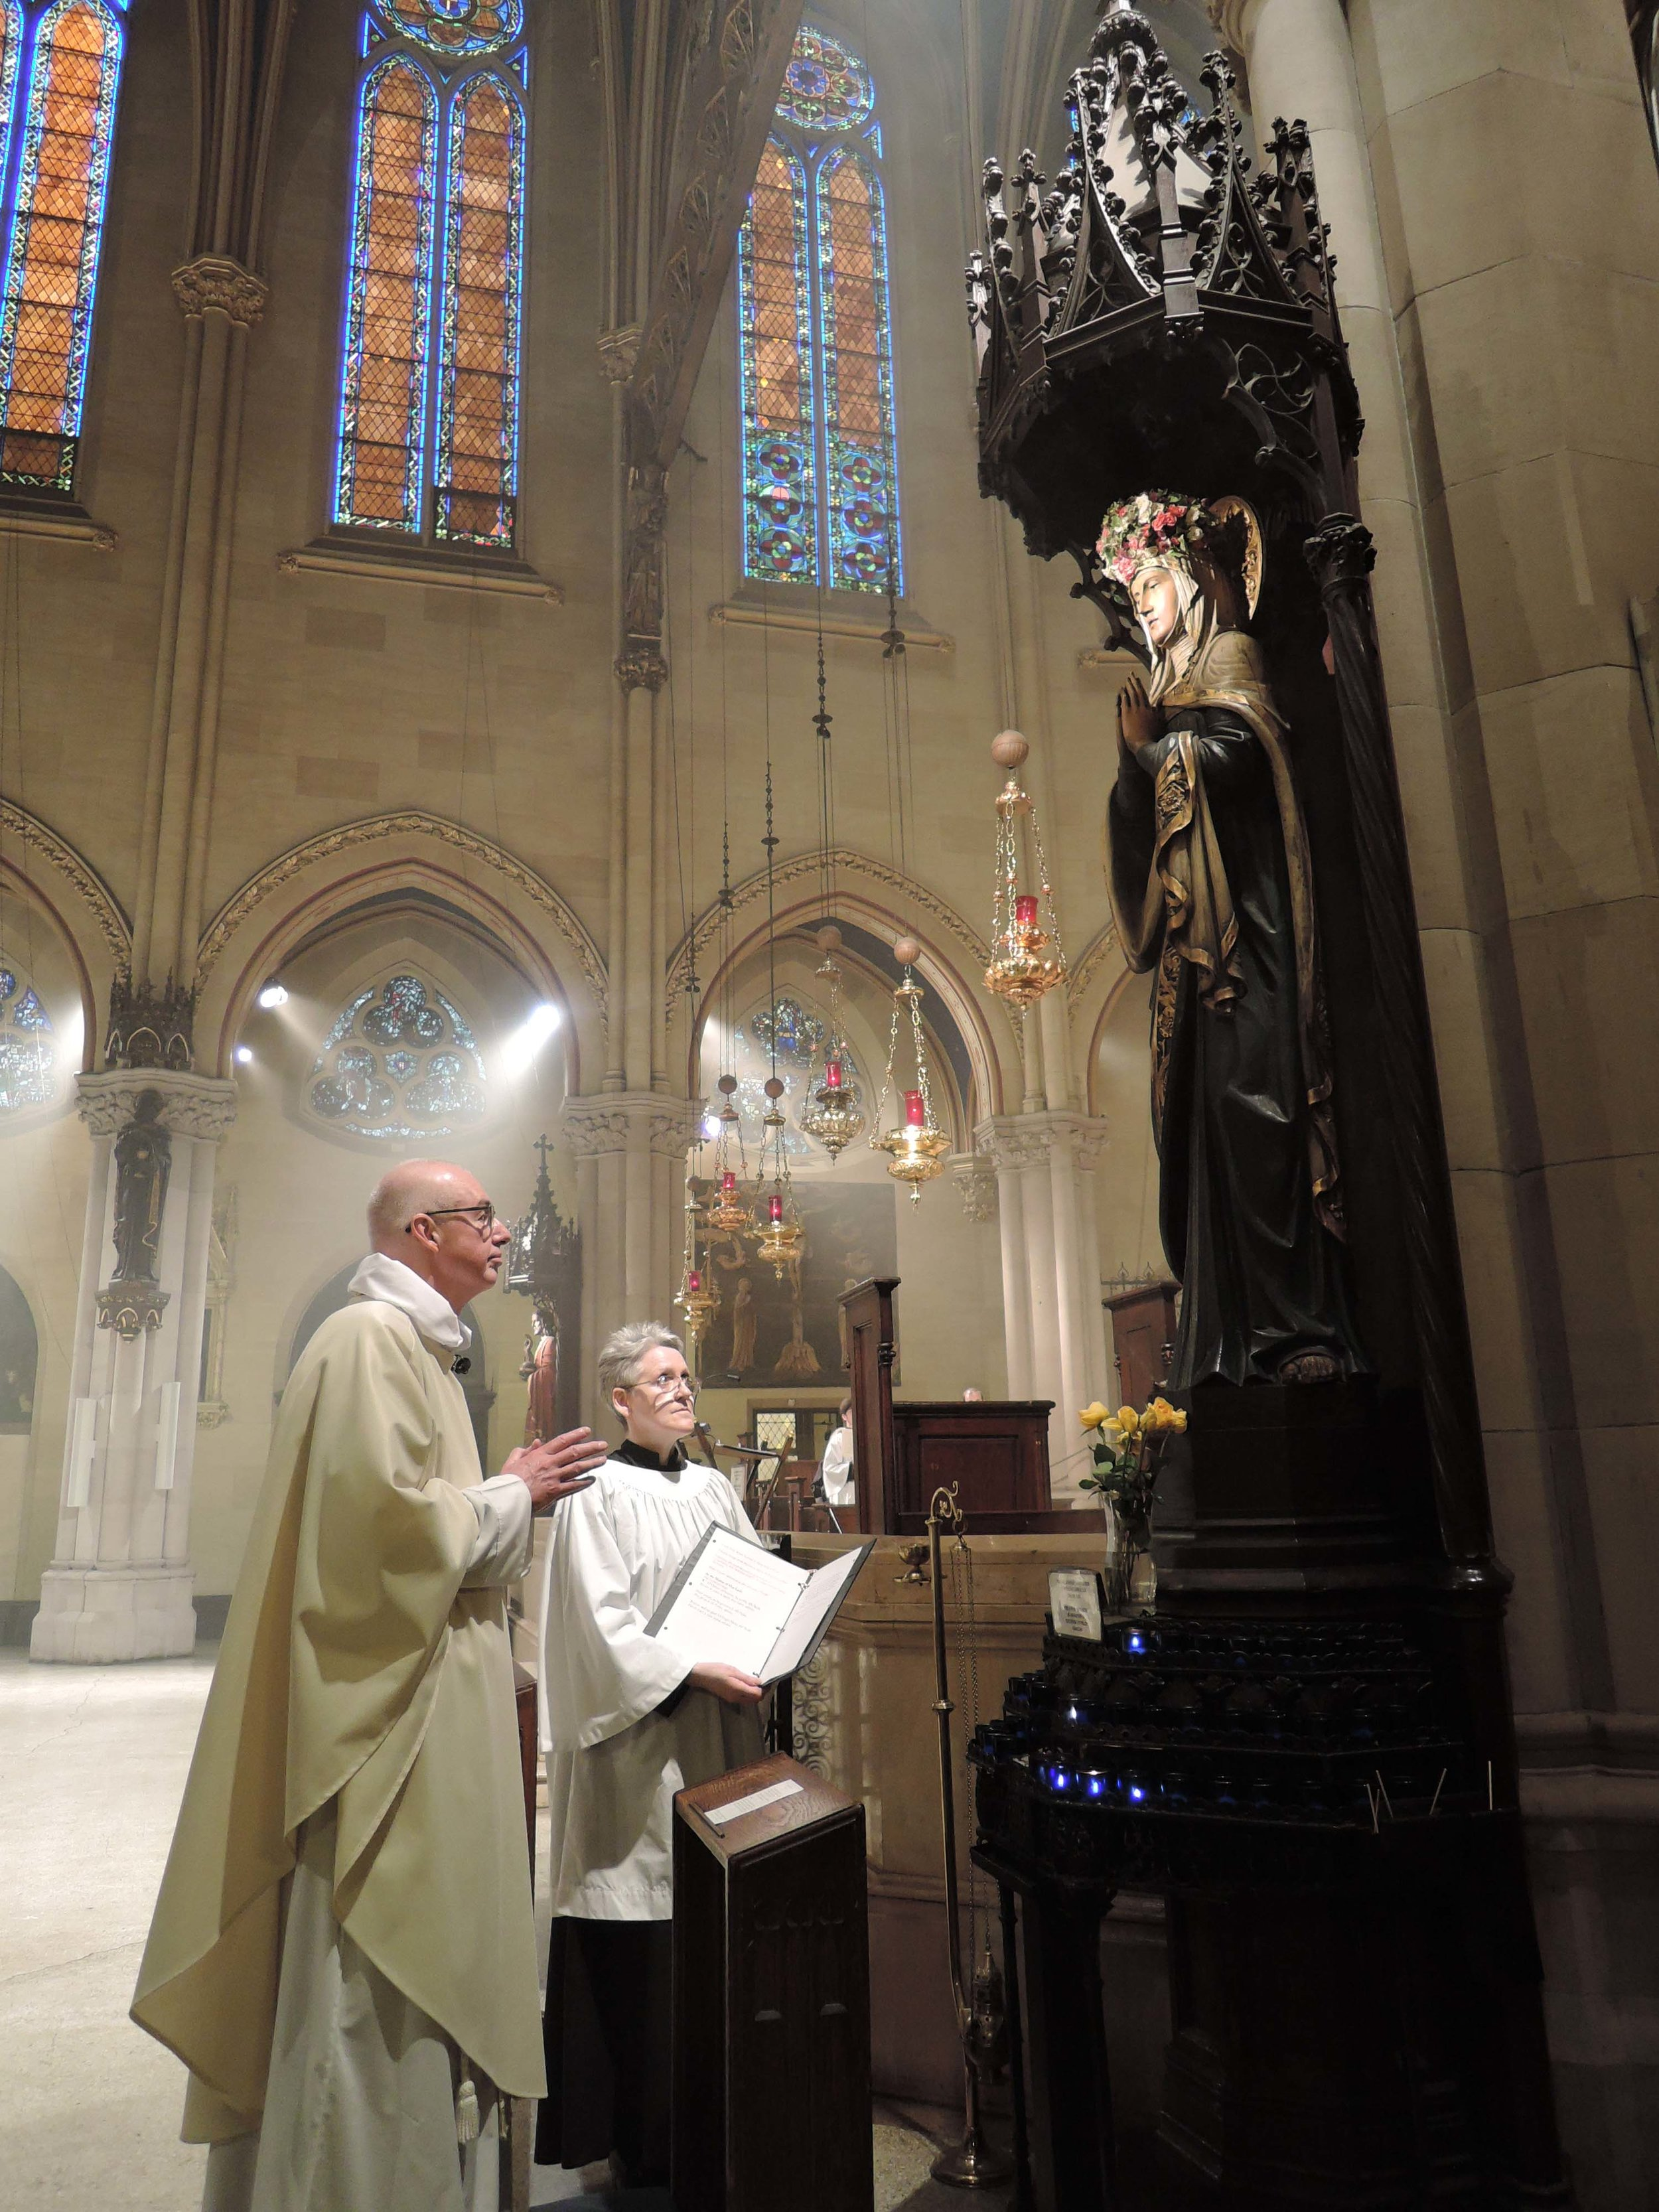 The Rector led the prayers at the Shrine of Our Lady.